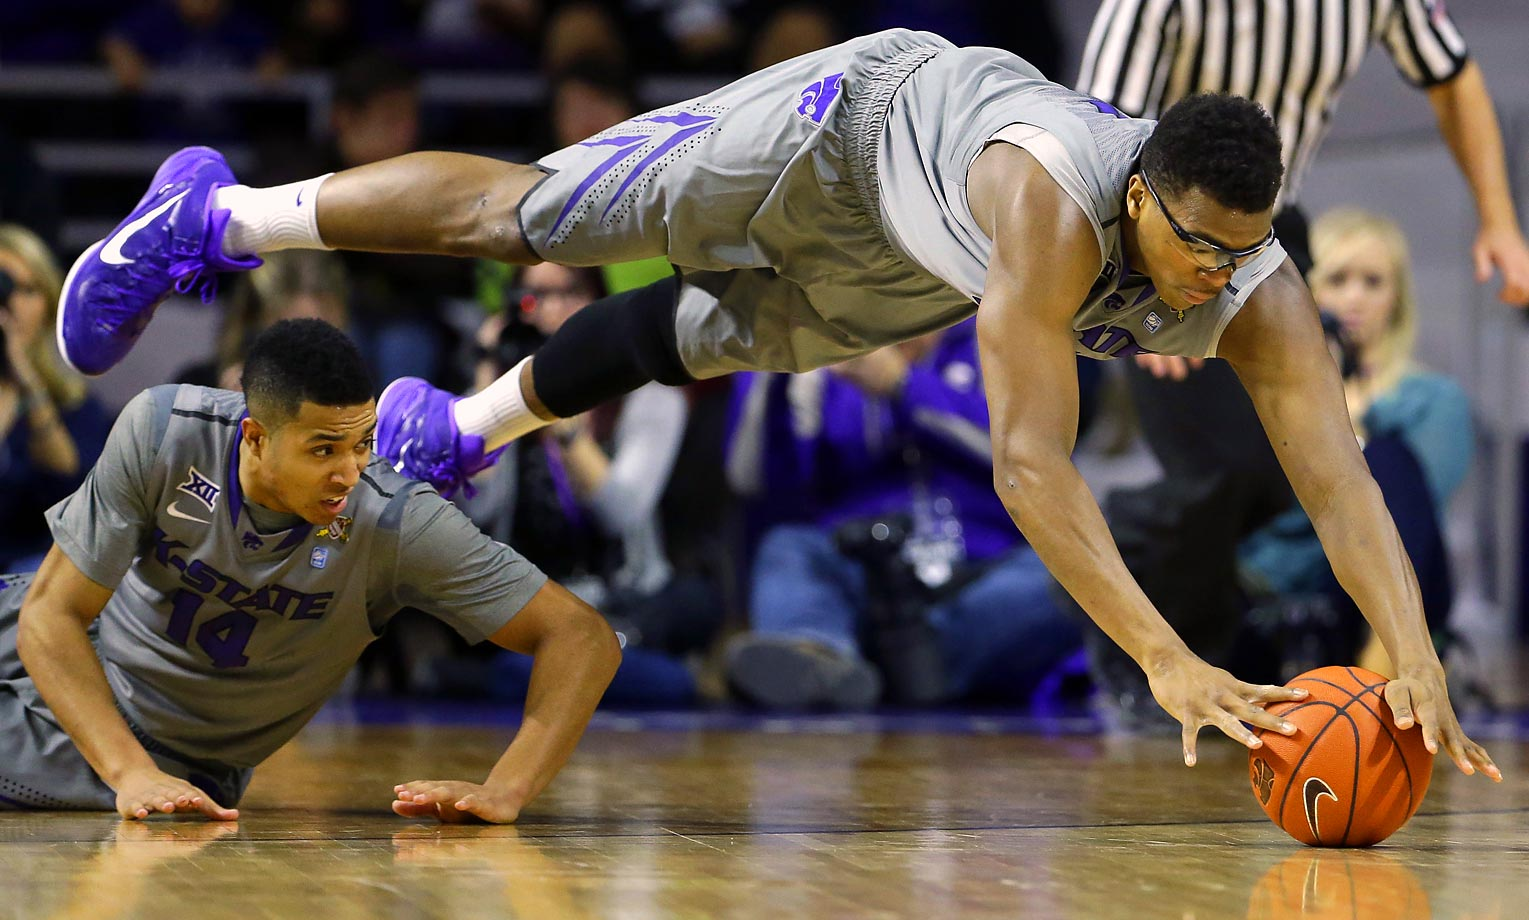 Kansas State's Stephen Hurt dives for a loose ball against Baylor.